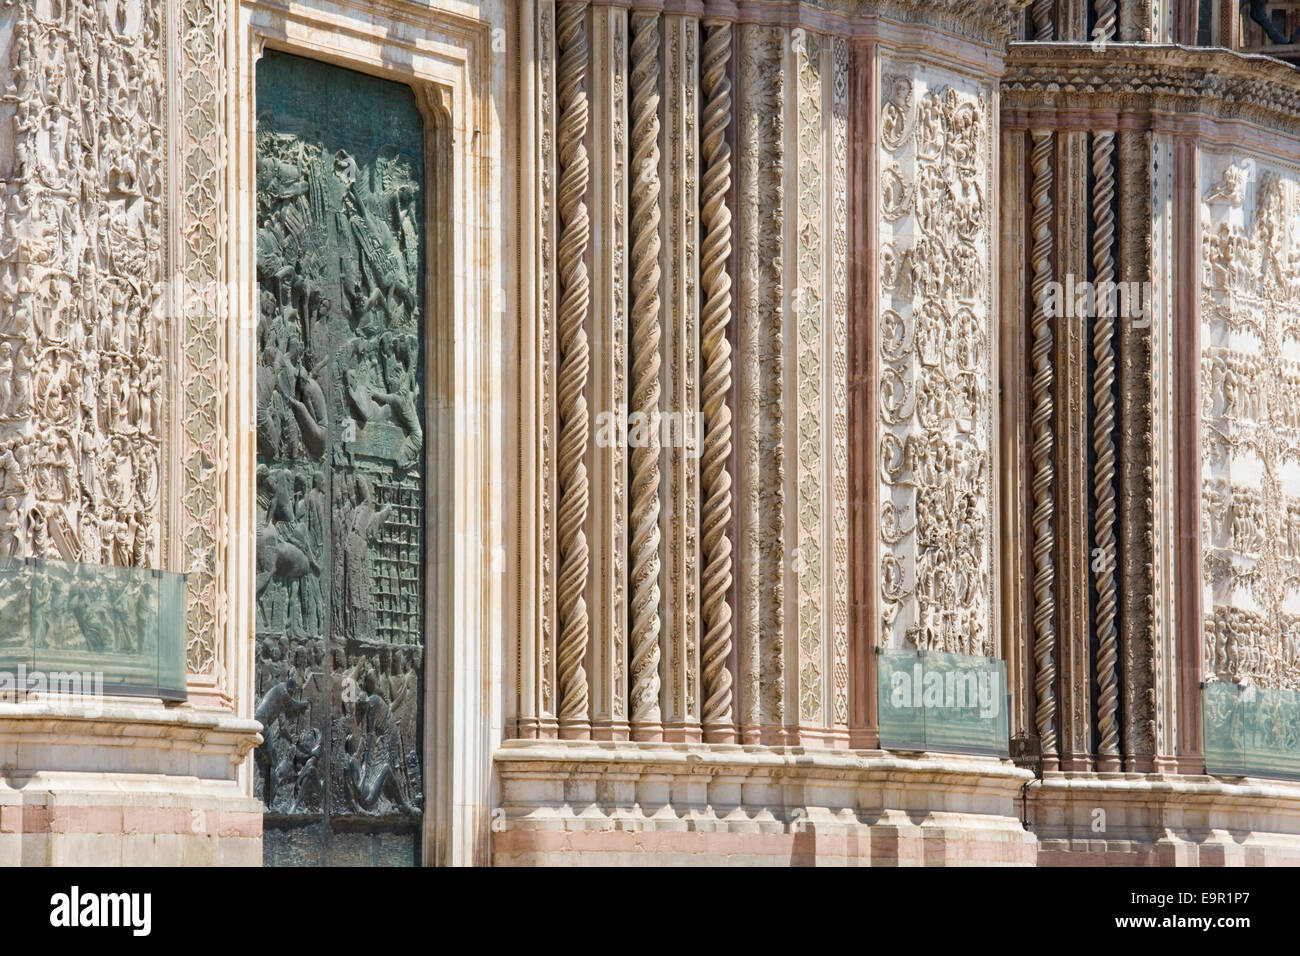 Orvieto, Umbria, Italy. Richly decorated west front of the cathedral. - Stock Image